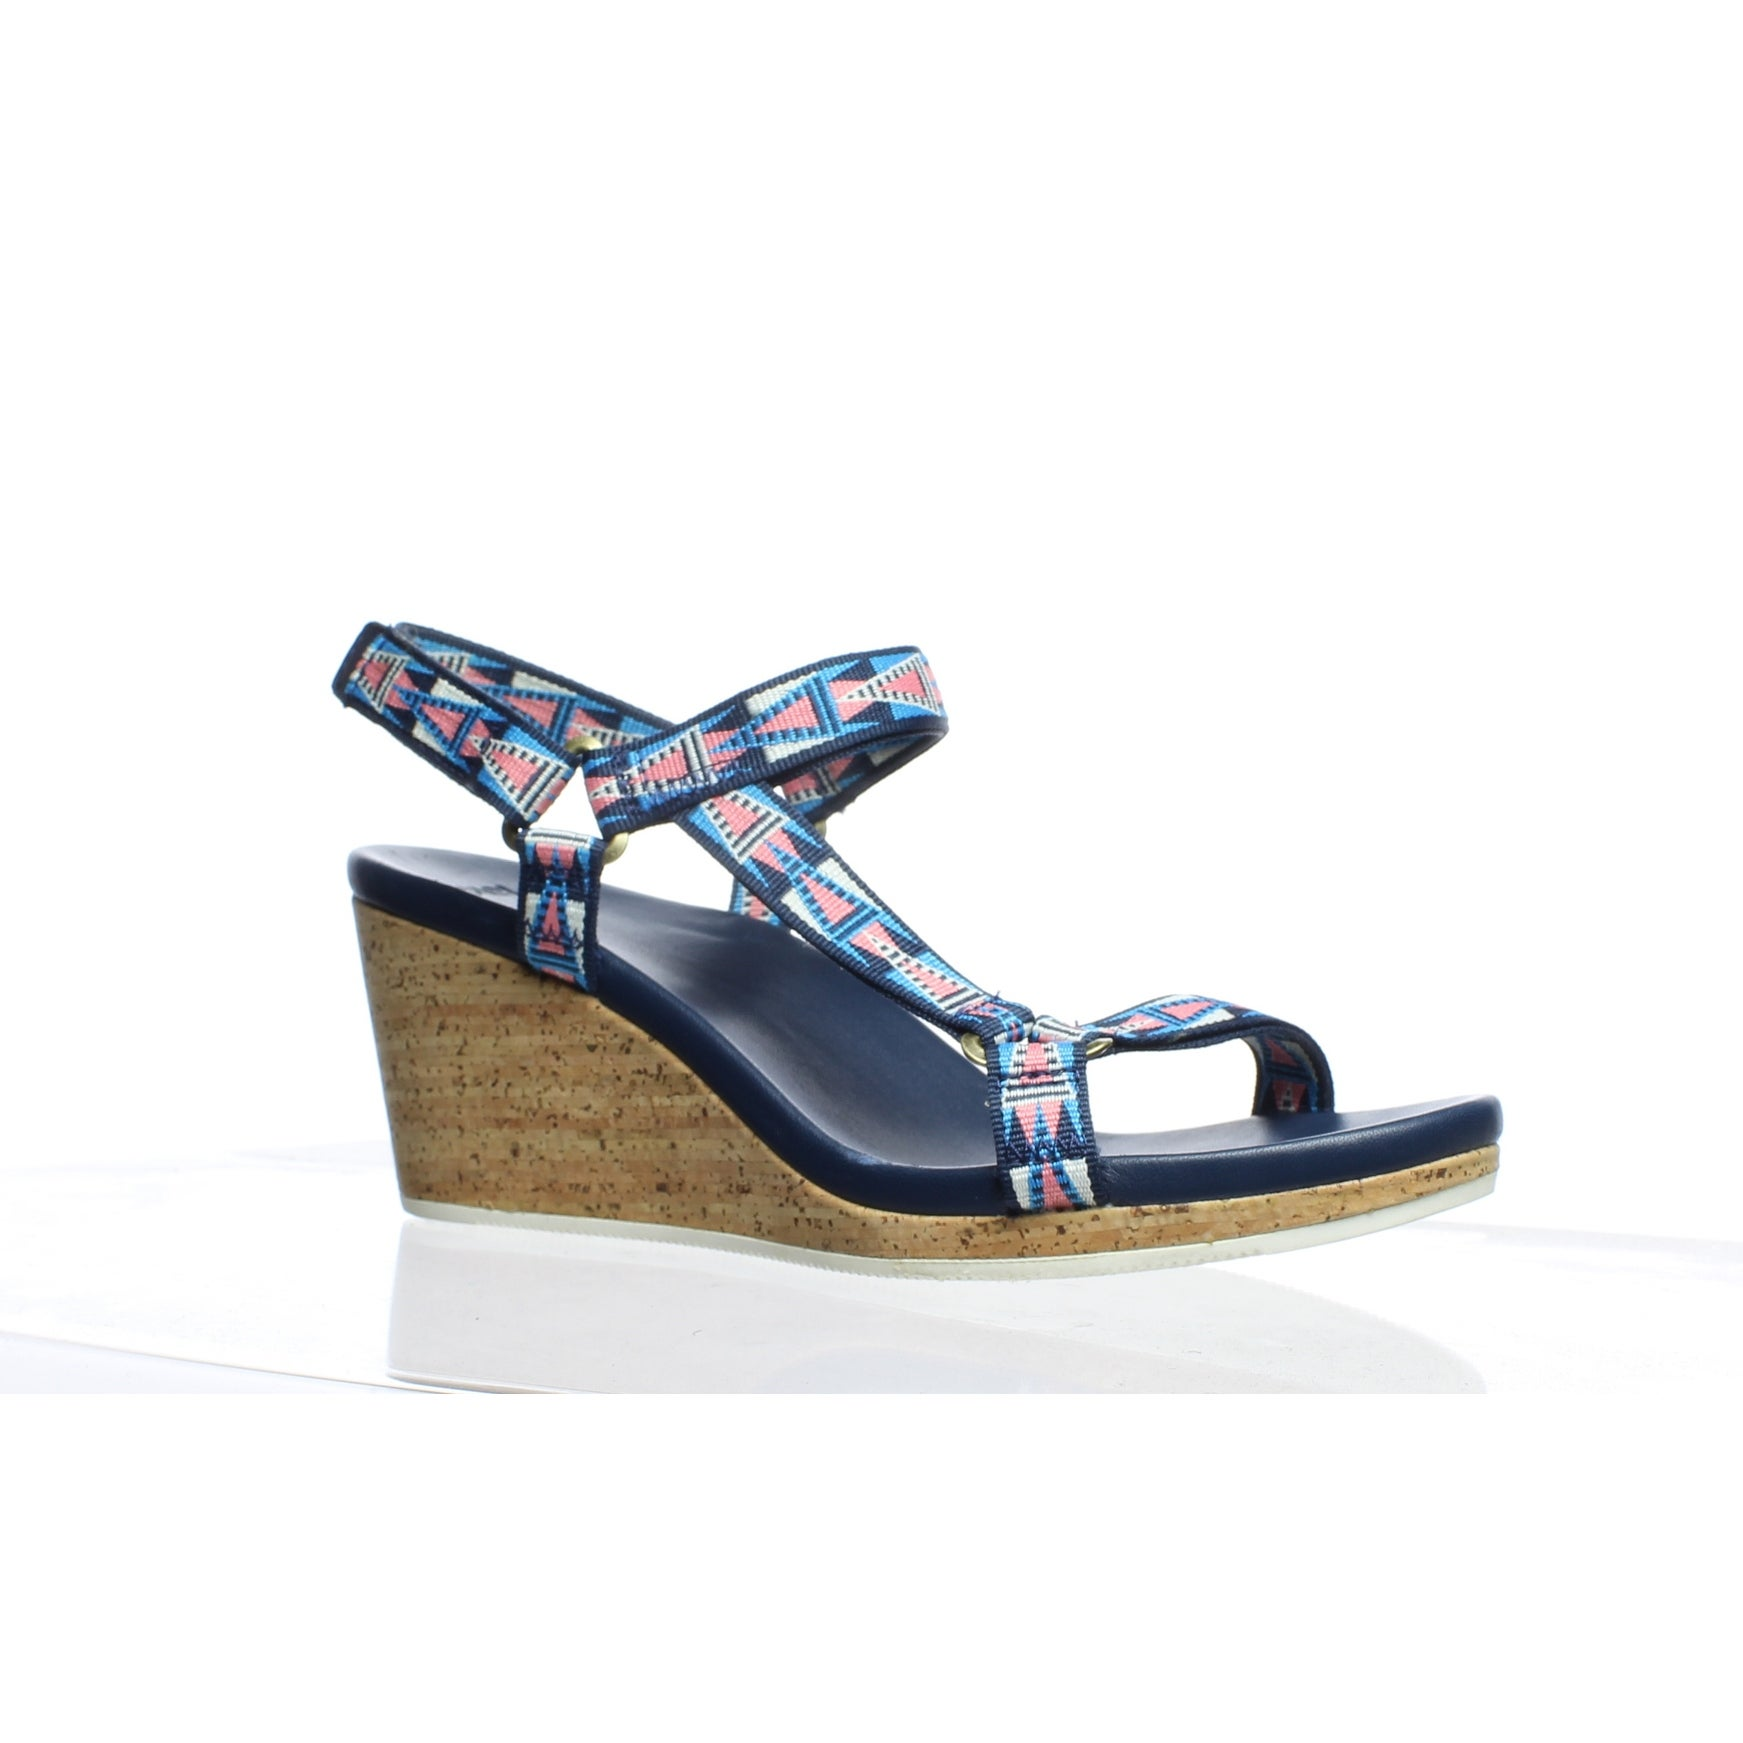 f553a83a0f53 Shop Teva Womens Arrabelle Universal Mosaic Navy Sandals Size 10 - Free  Shipping Today - Overstock - 27913719